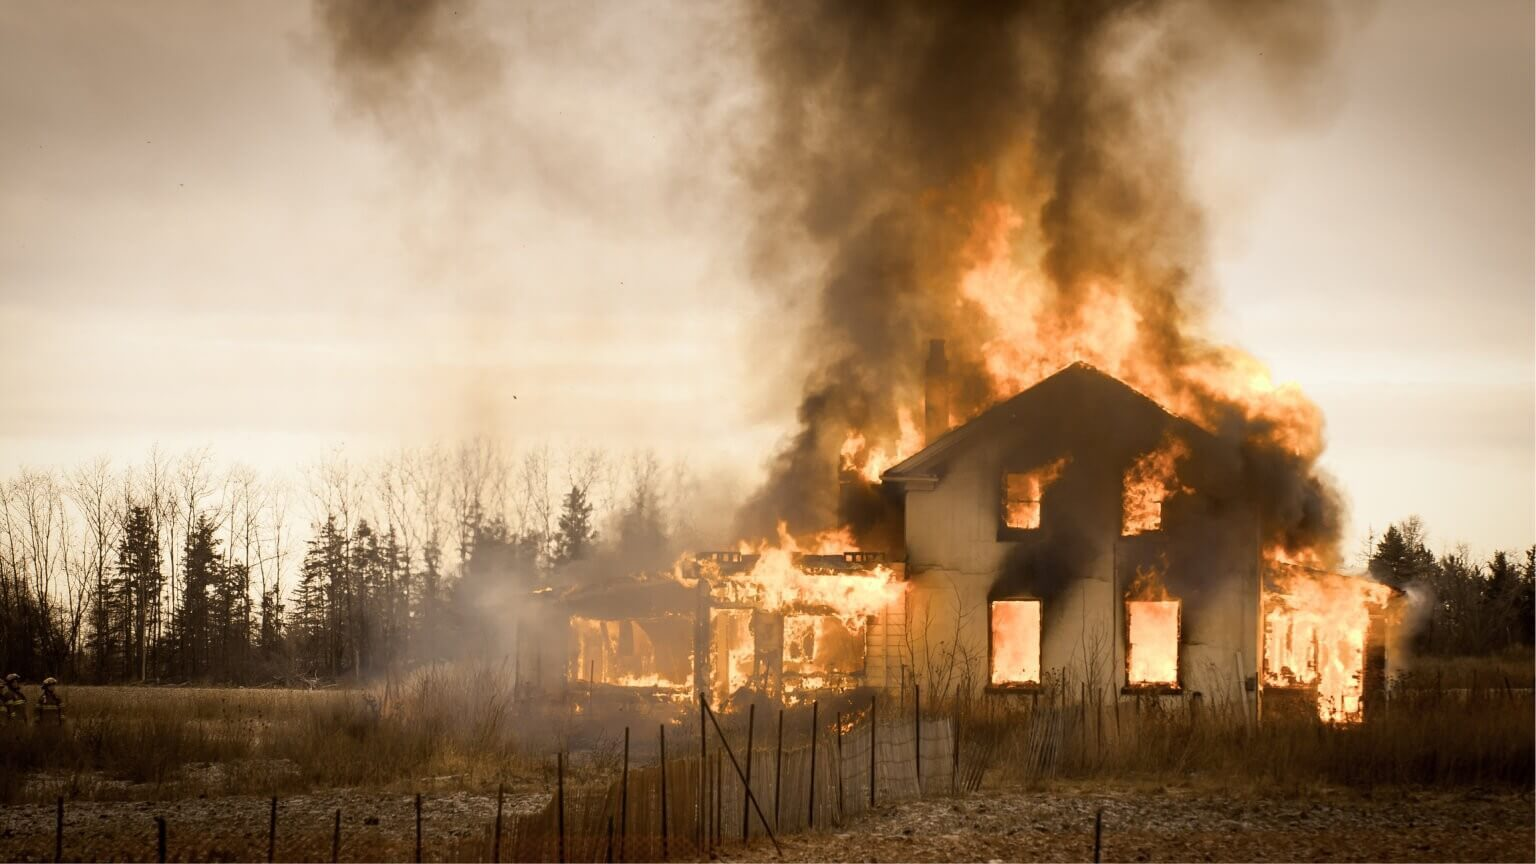 picture of a house on fire in flames